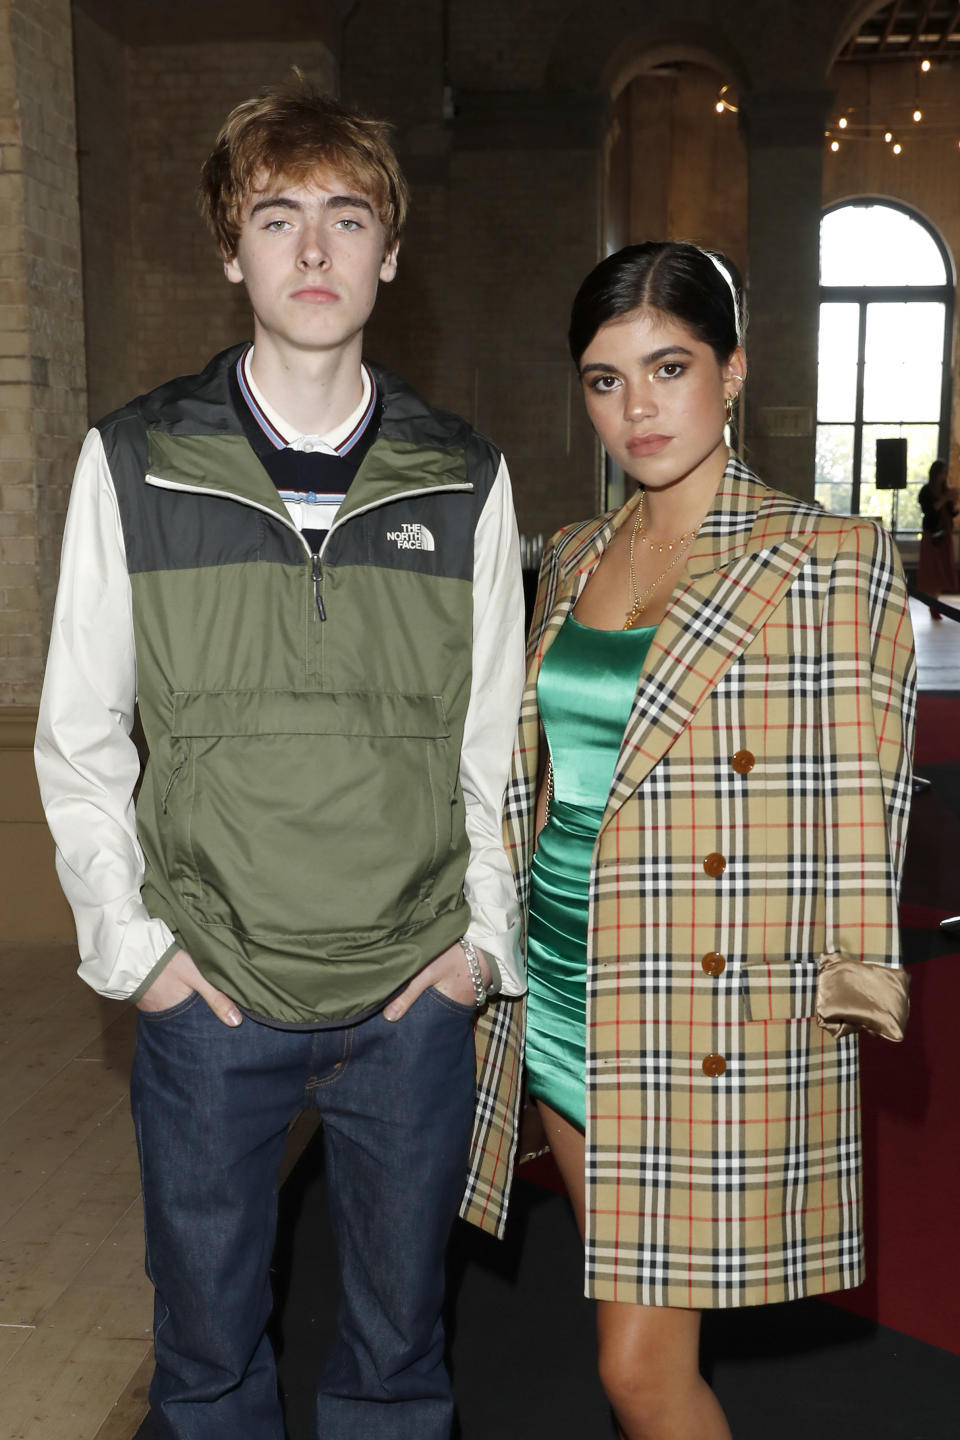 """Lennon Gallagher and Molly Gallagher attend the World Premiere of """"Liam Gallagher: As It Was"""" at Alexandra Palace on June 06, 2019 in London, England. (Photo by David M. Benett/Dave Benett/WireImage)"""